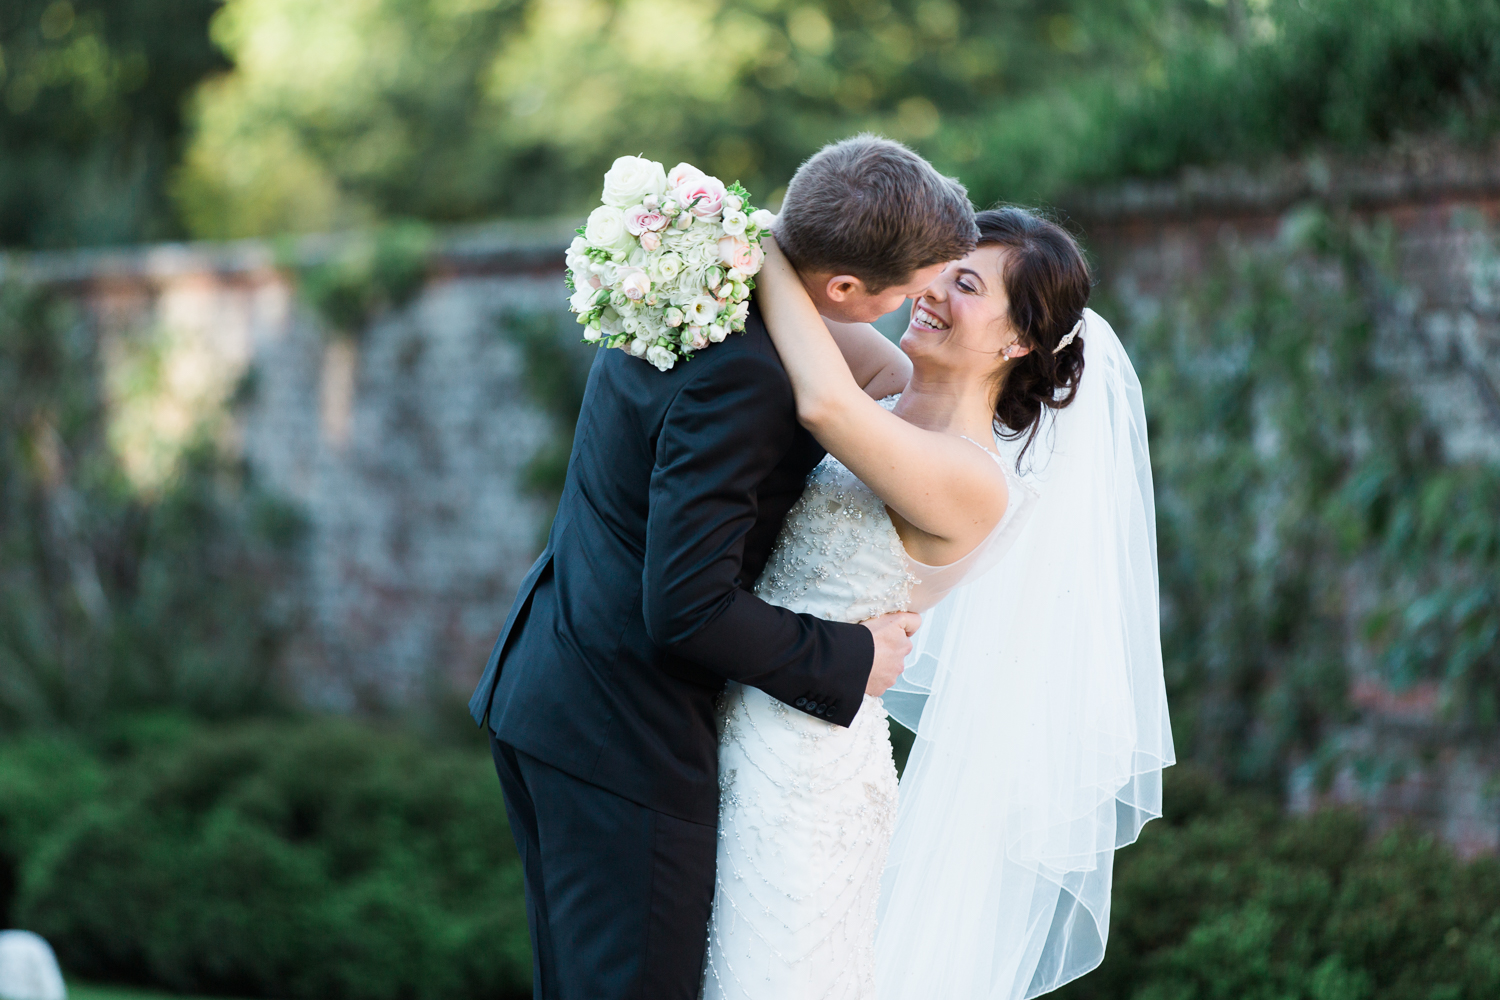 Bride and groom portraits at Iscoyd Park wedding photo